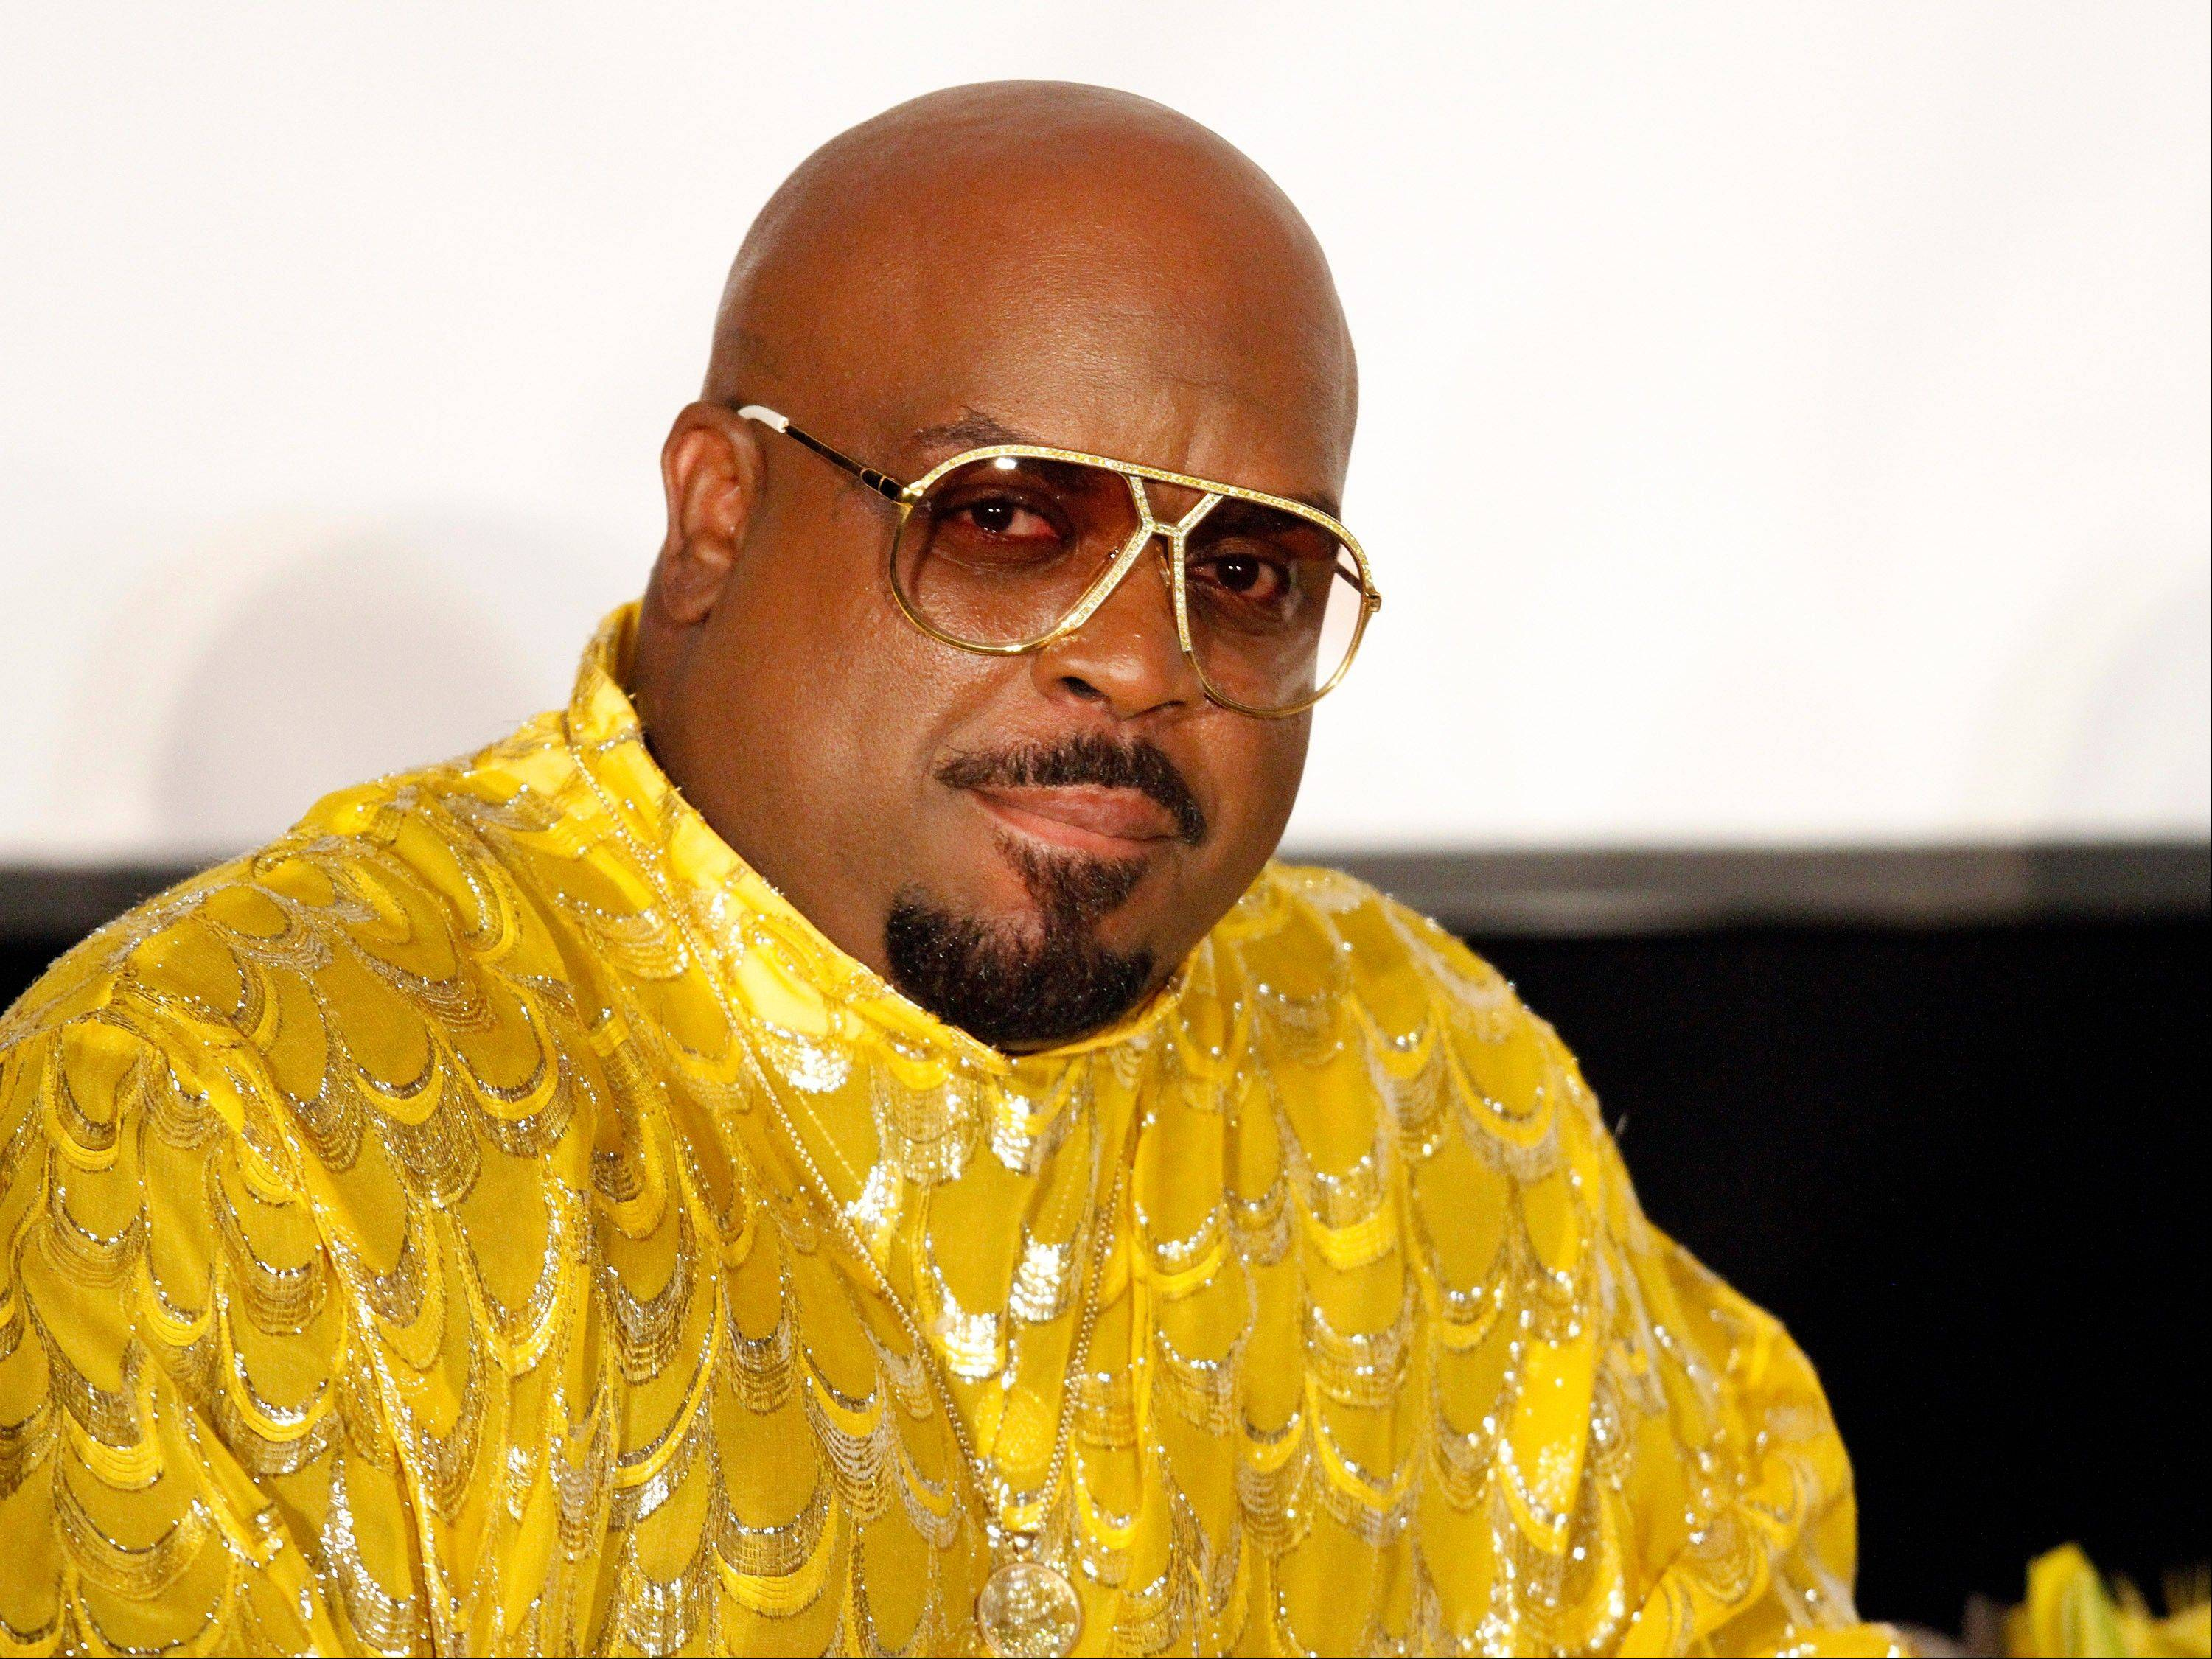 Los Angeles prosecutors charged singer/songwriter and rapper Cee Lo Green, whose real name is Thomas DeCarlo Callaway, with one felony count of furnishing a controlled substance on Monday. The singer faces up to four years in prison if convicted.